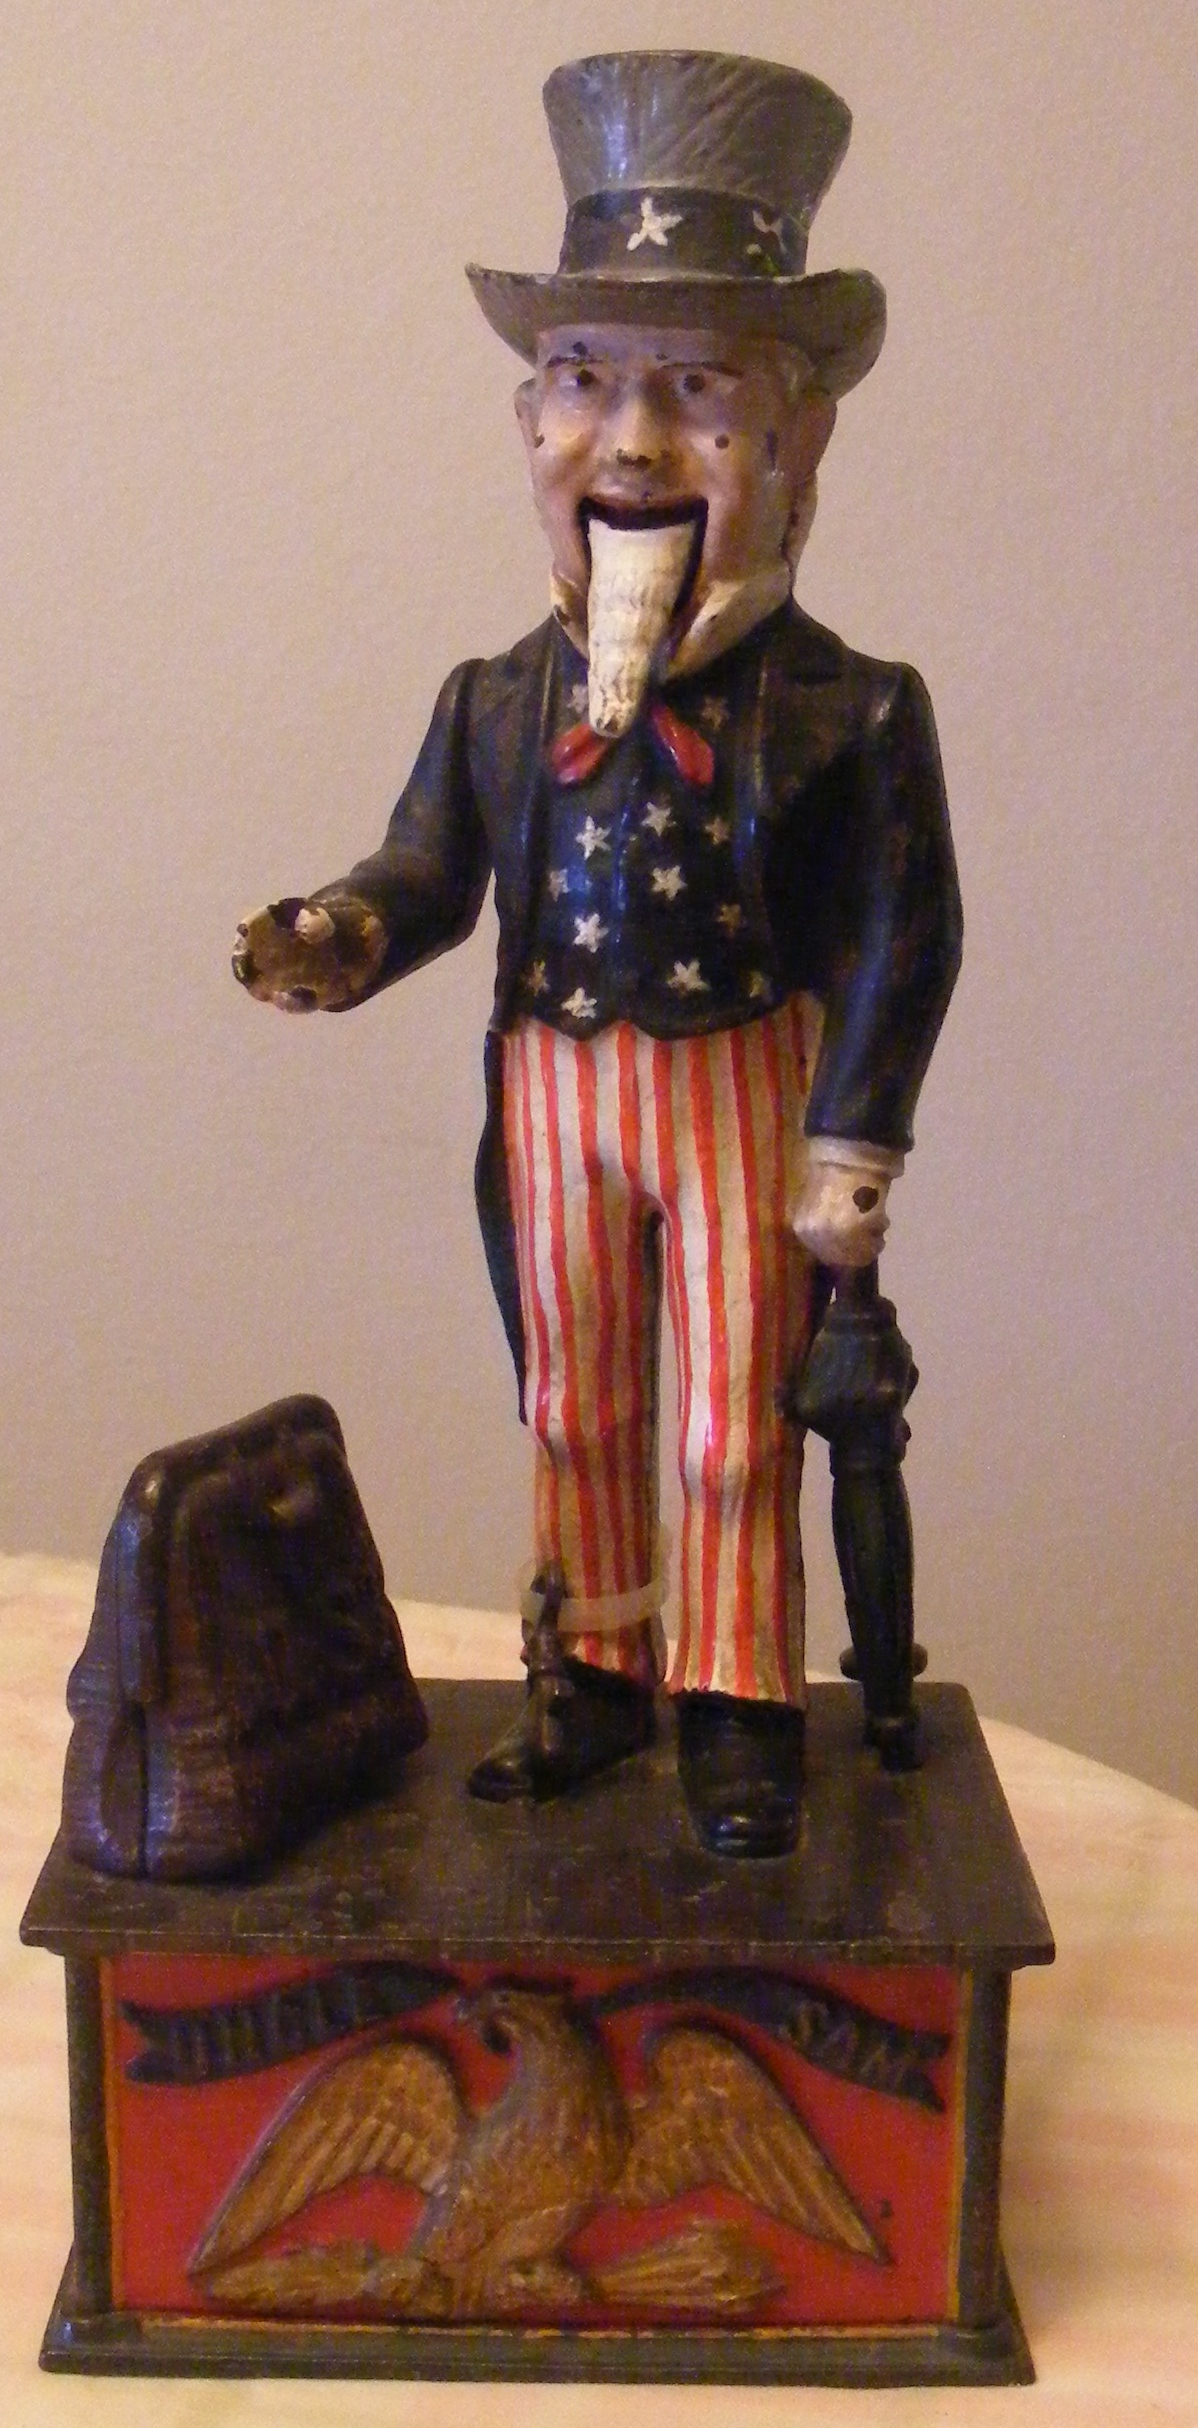 Original Uncle Sam Bank For Sale Classifieds